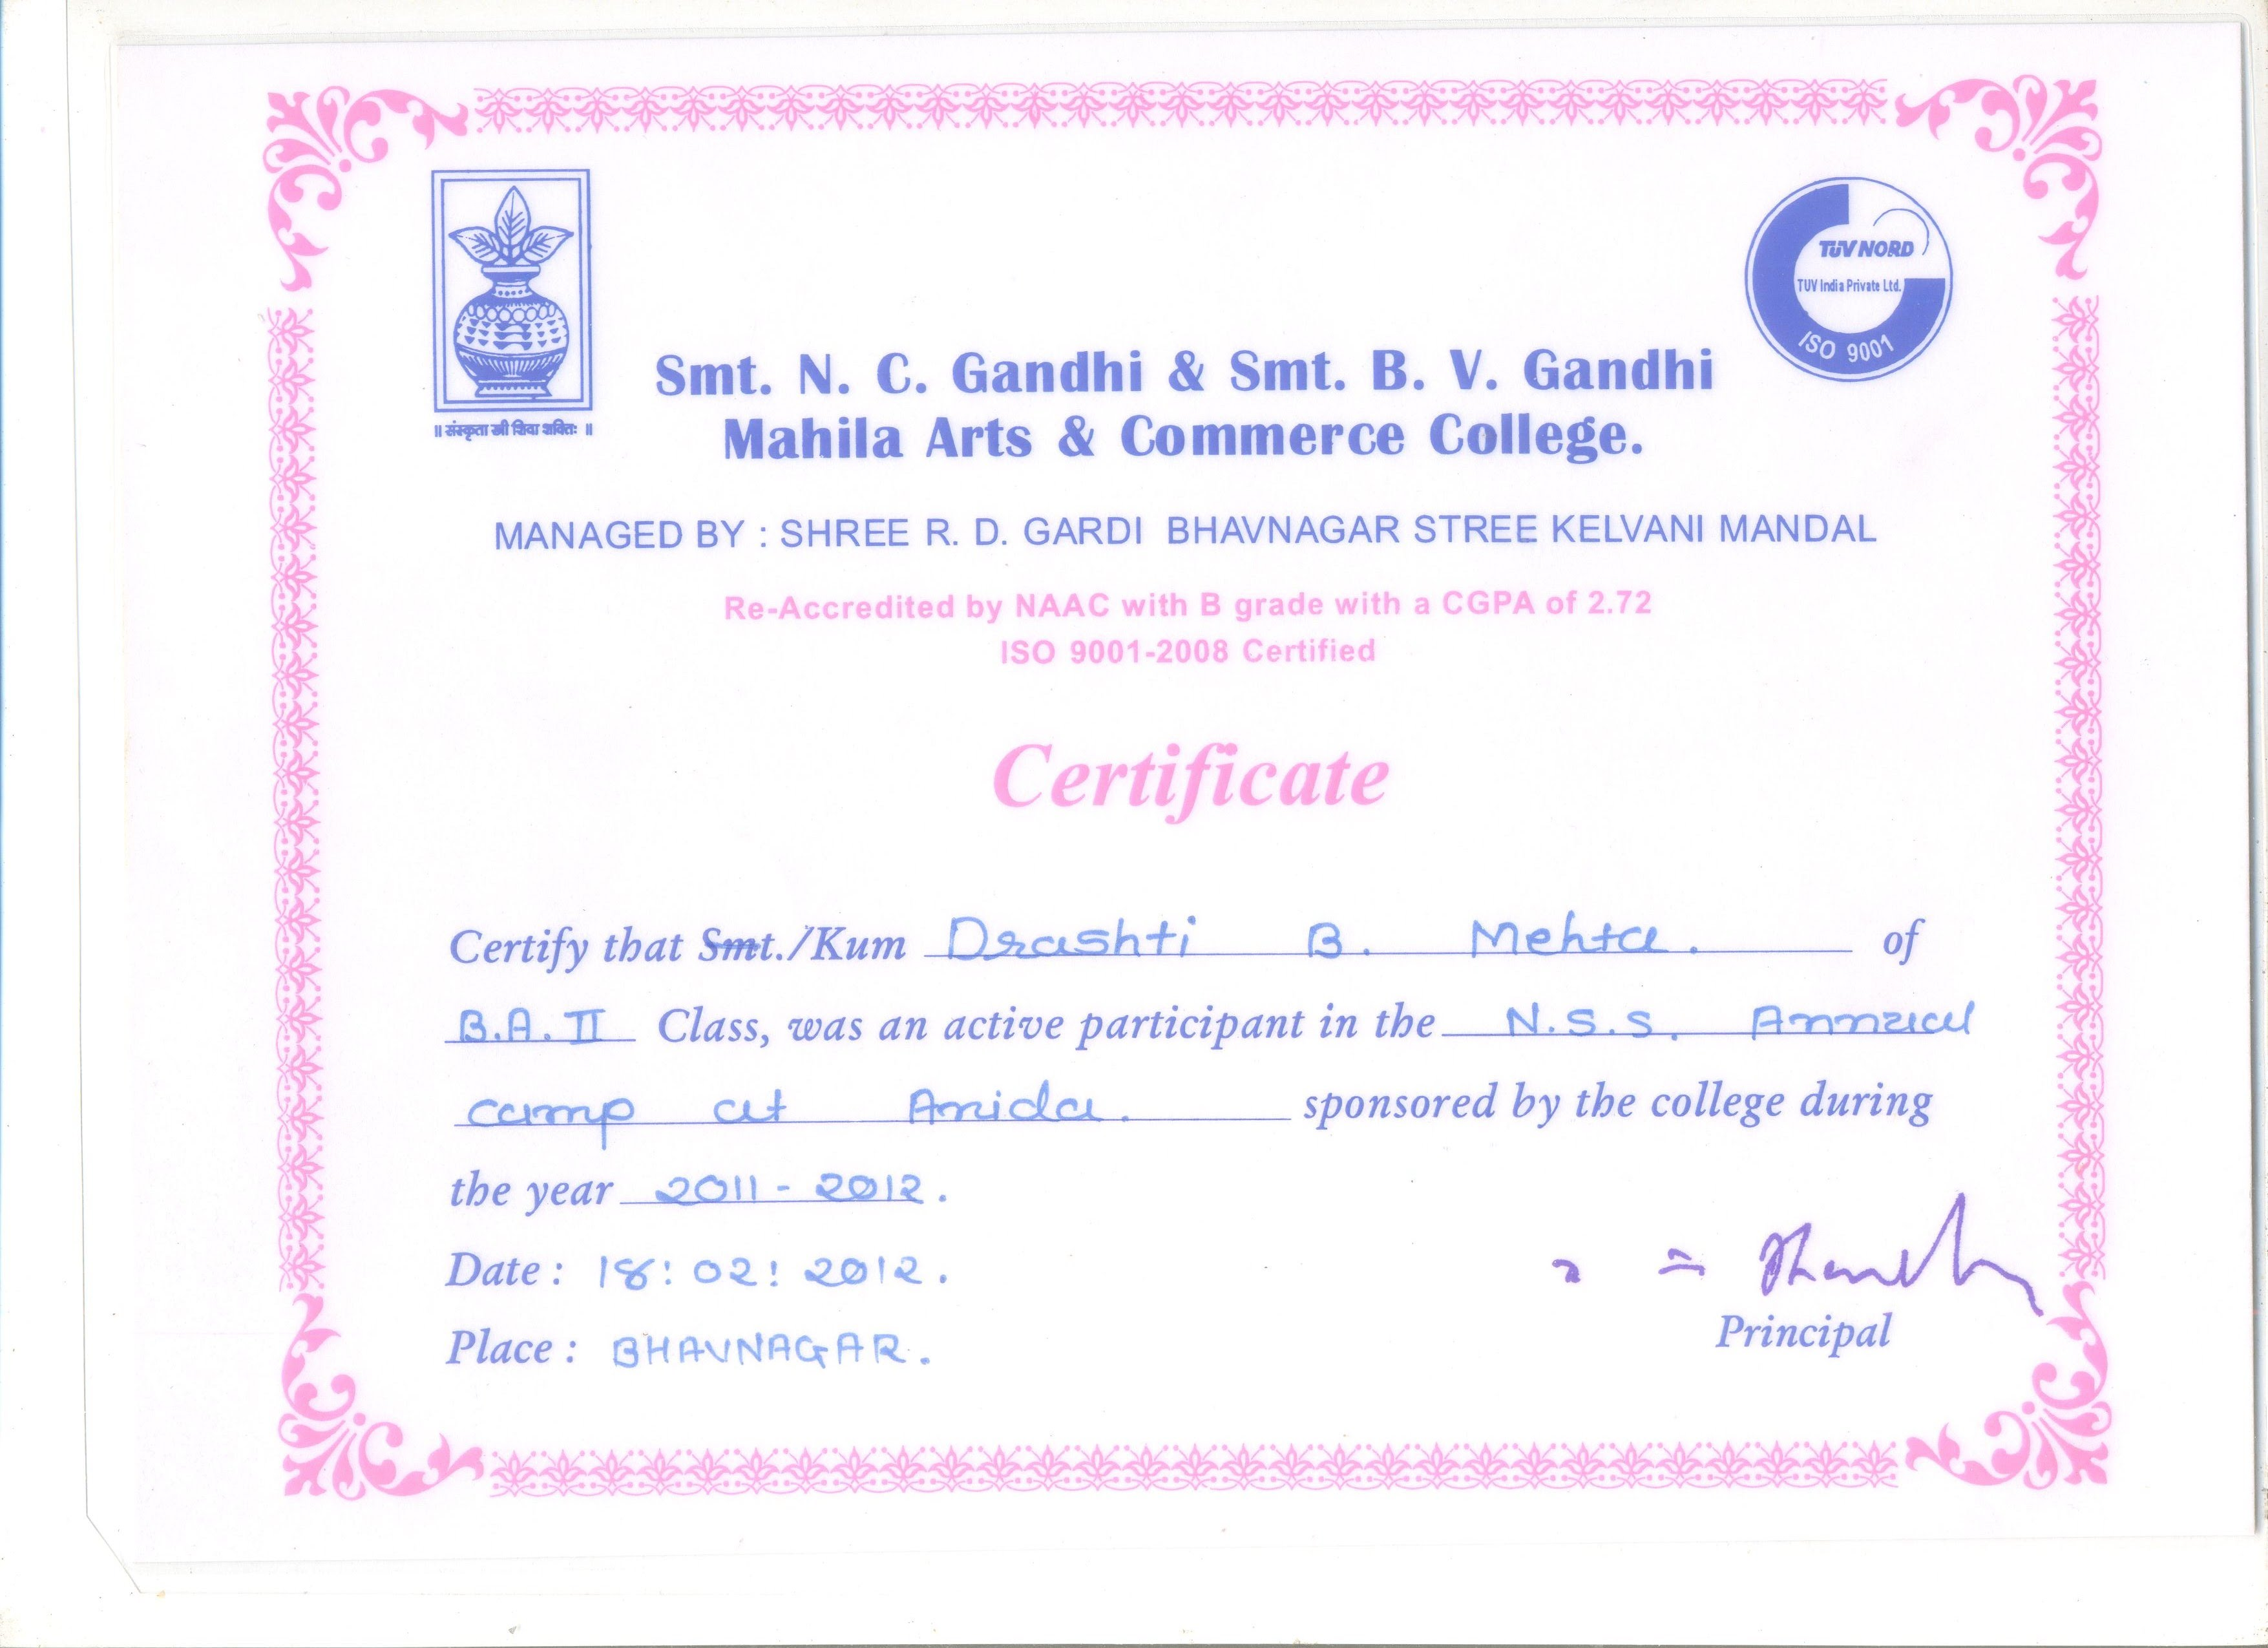 028g i get a certificate from college for doing active participation in nss annual camp sponsored by college altavistaventures Gallery